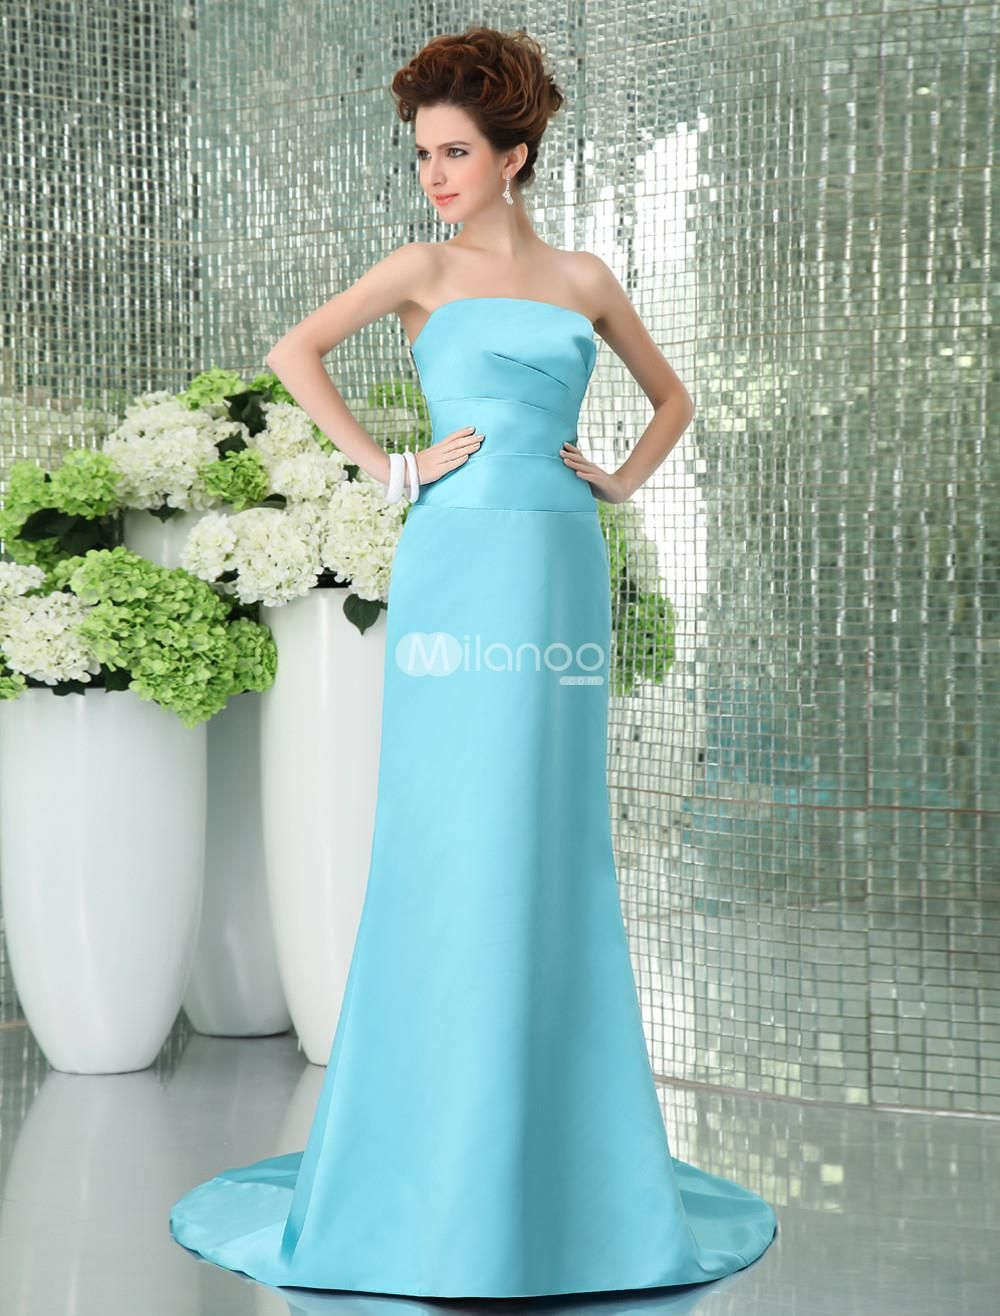 Strapless satin bridesmaid dress get the look everyone would envy